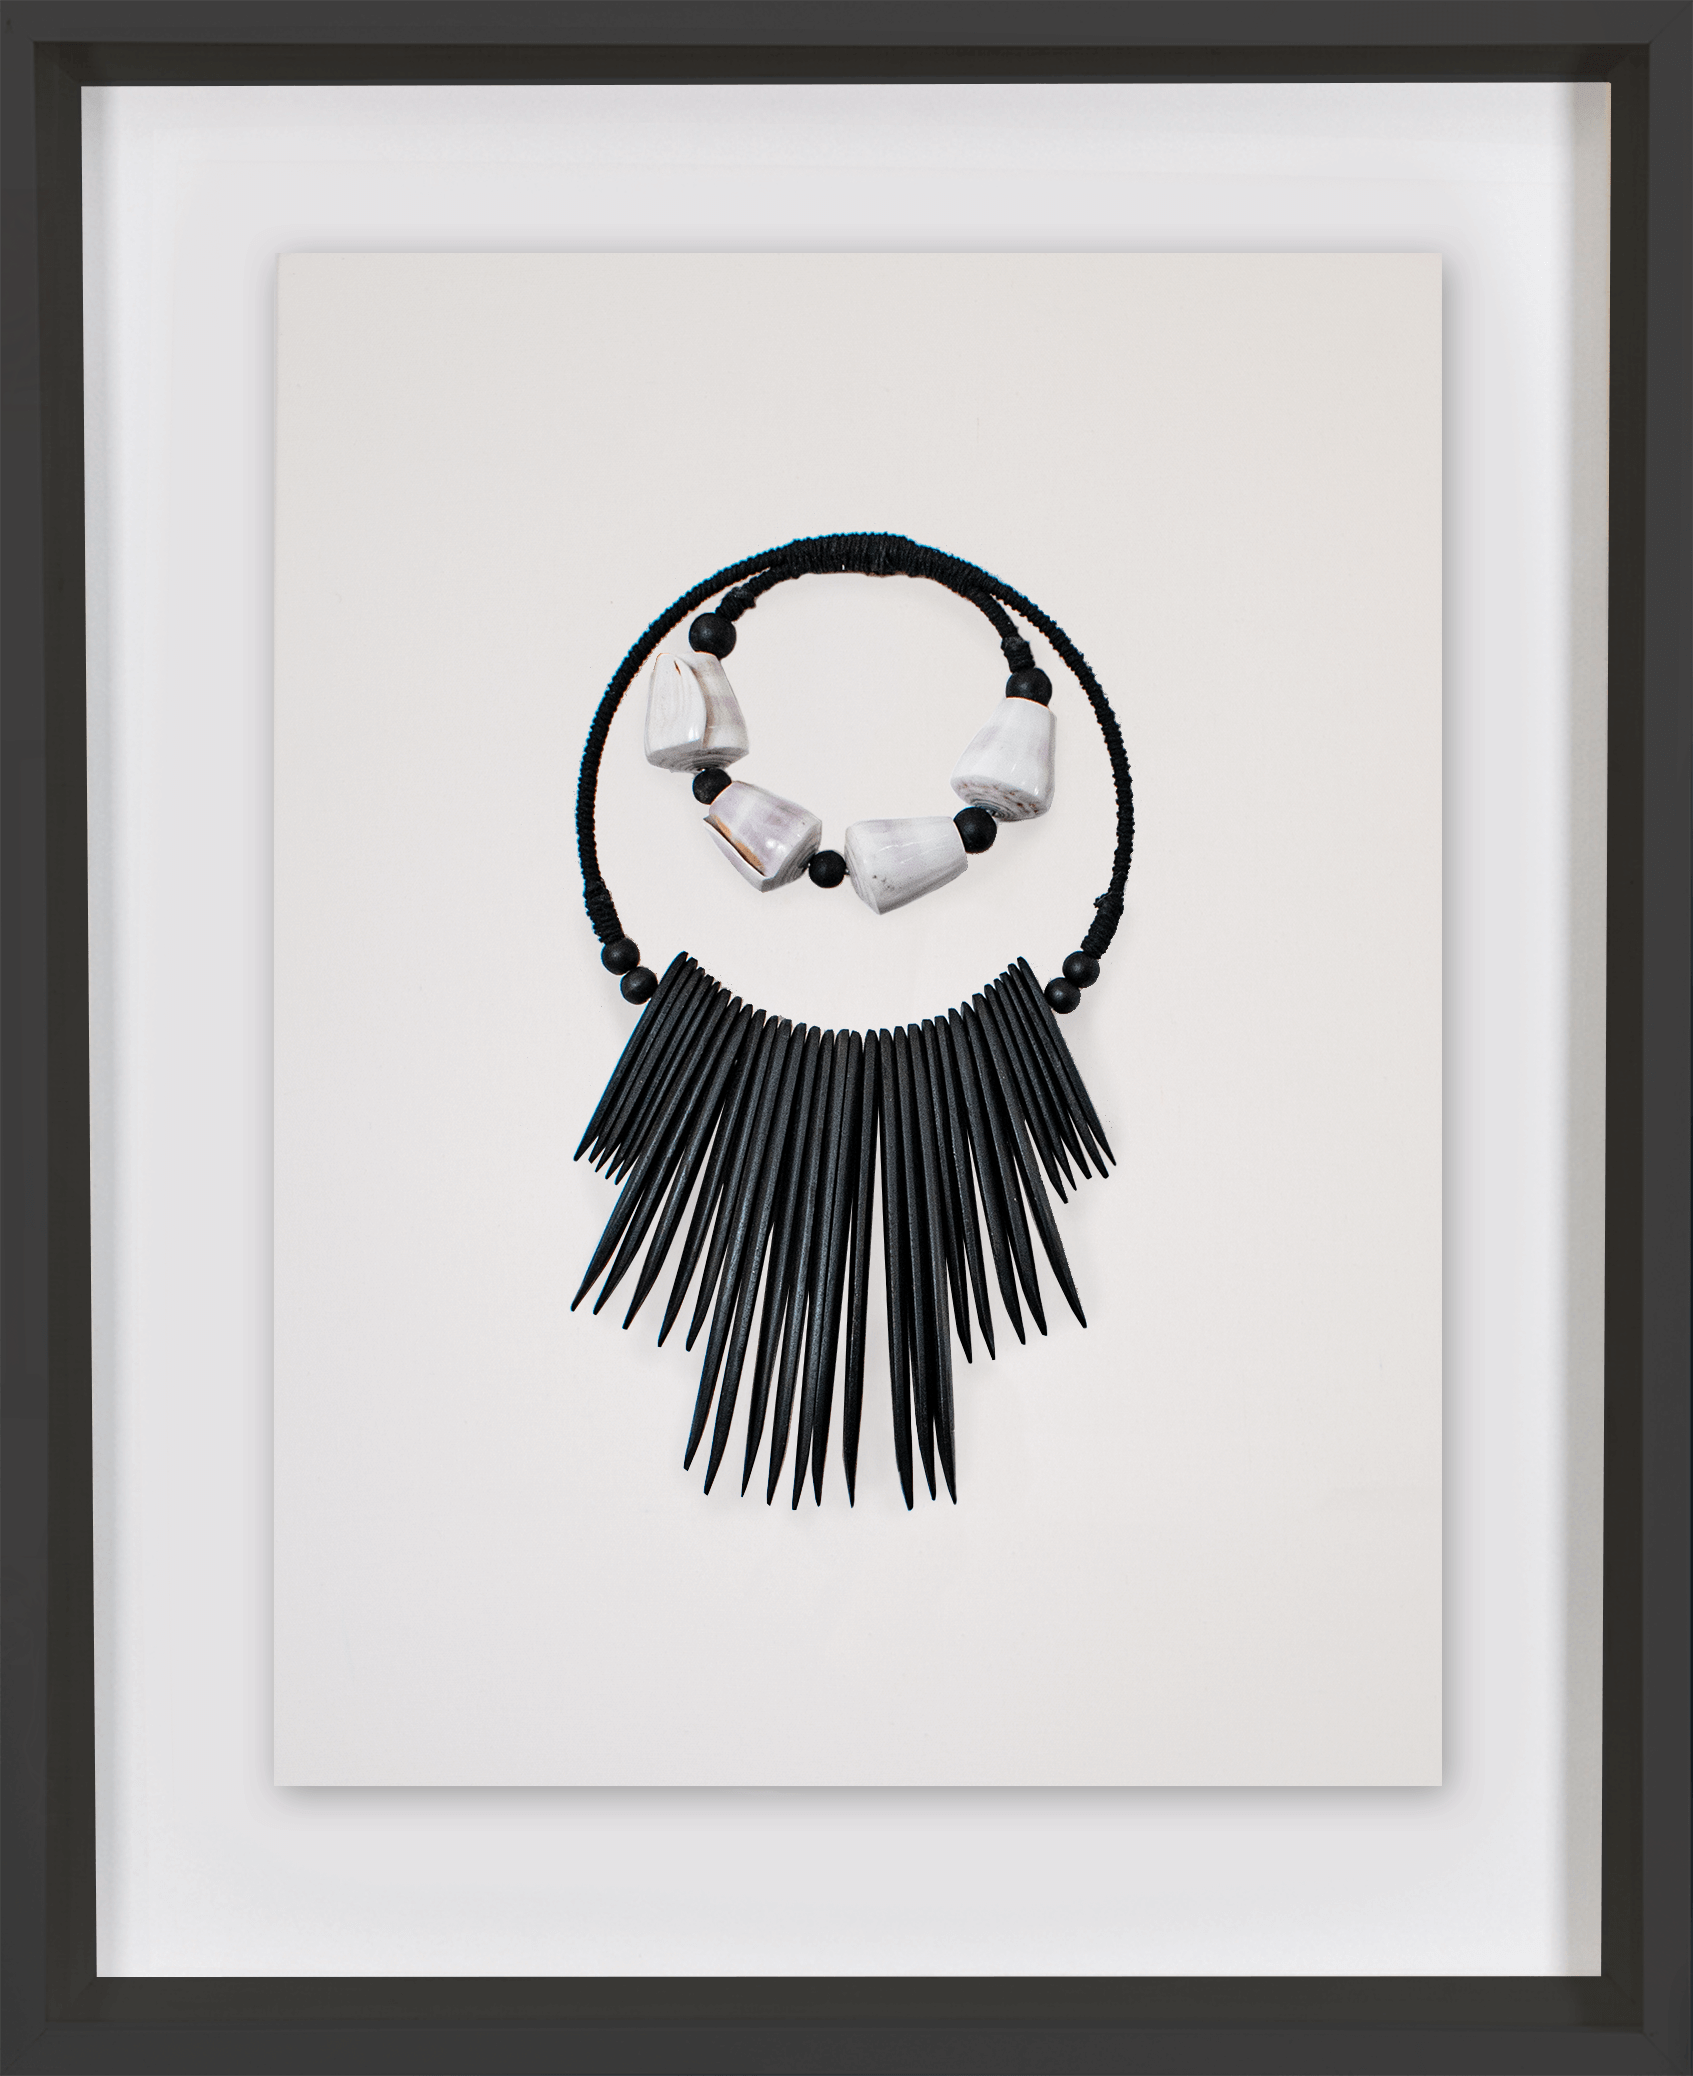 Bandhini Homewear Design Artwork natural / 26 x 33 Wooden Tribal Necklace Black Artwork 67 x 85 cm